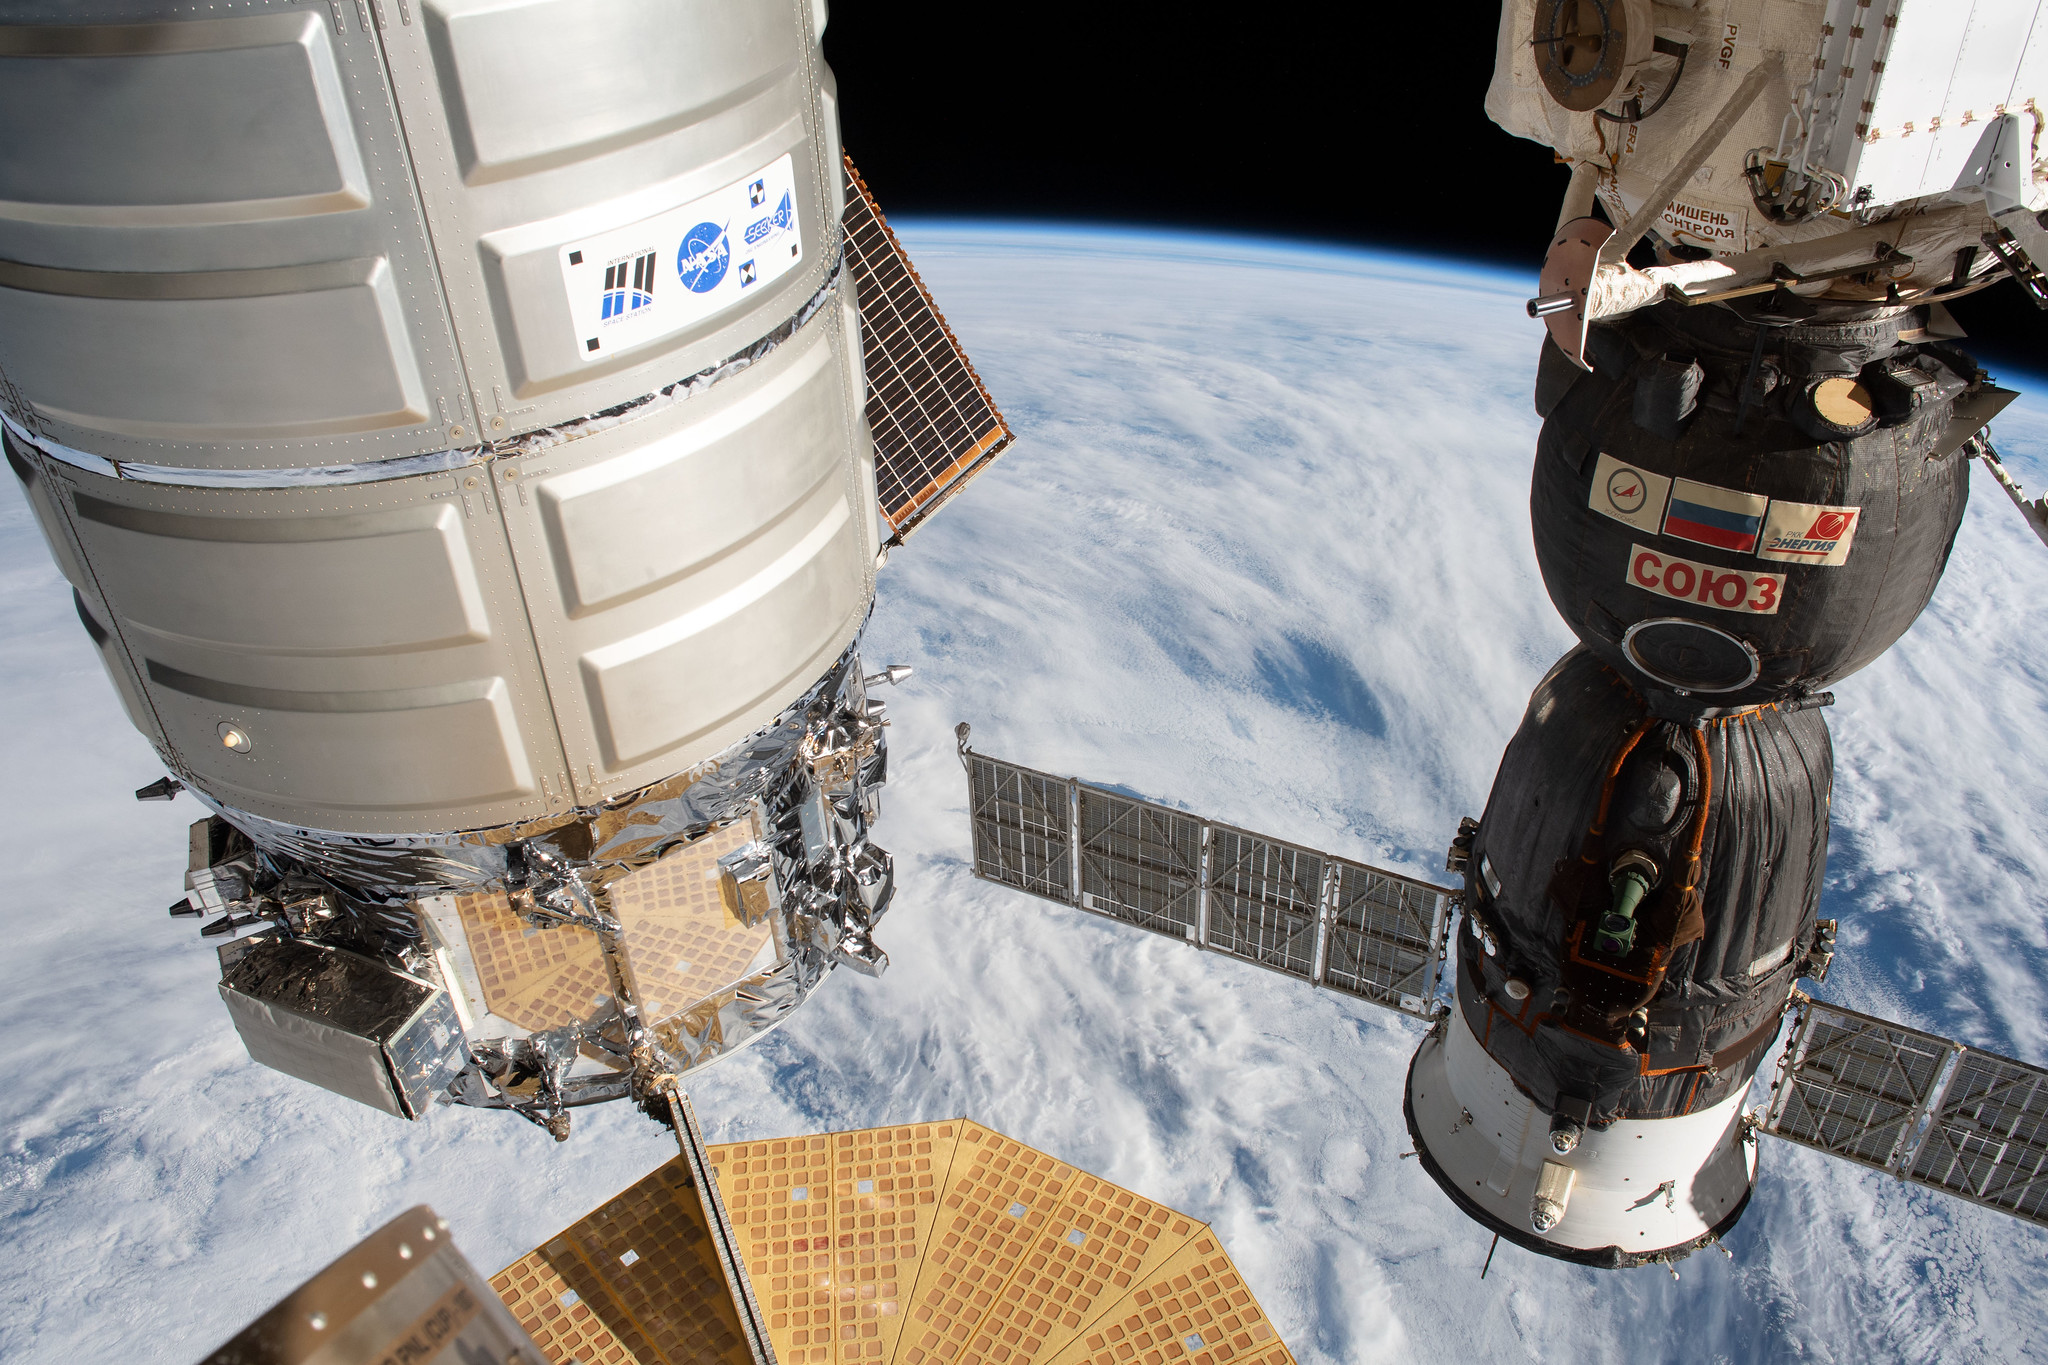 The NG-11 Cygnus, left, is attached to the space station's Unity module. Credit: NASA